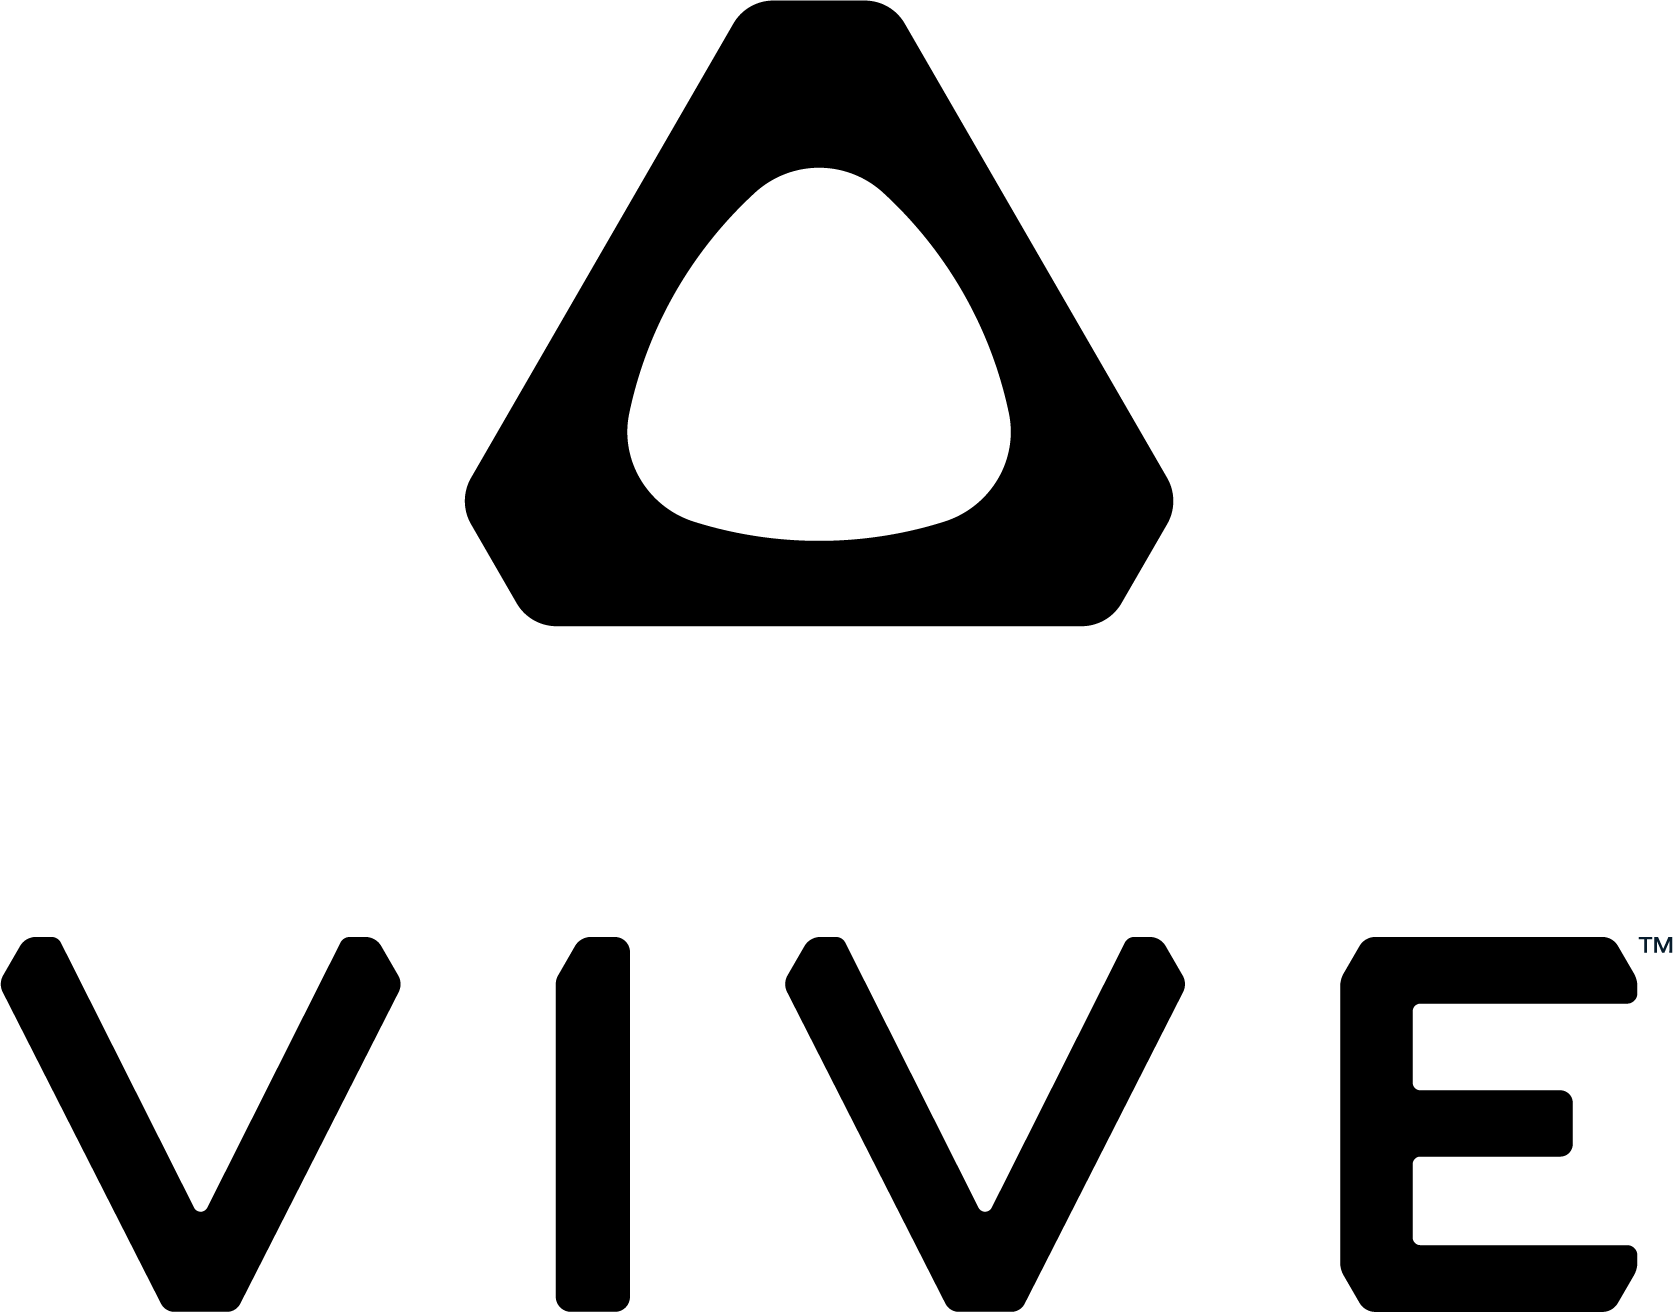 VIVE_MainLogo_Digital_Primary_Blue-DarkBlue_RGB_TM.png